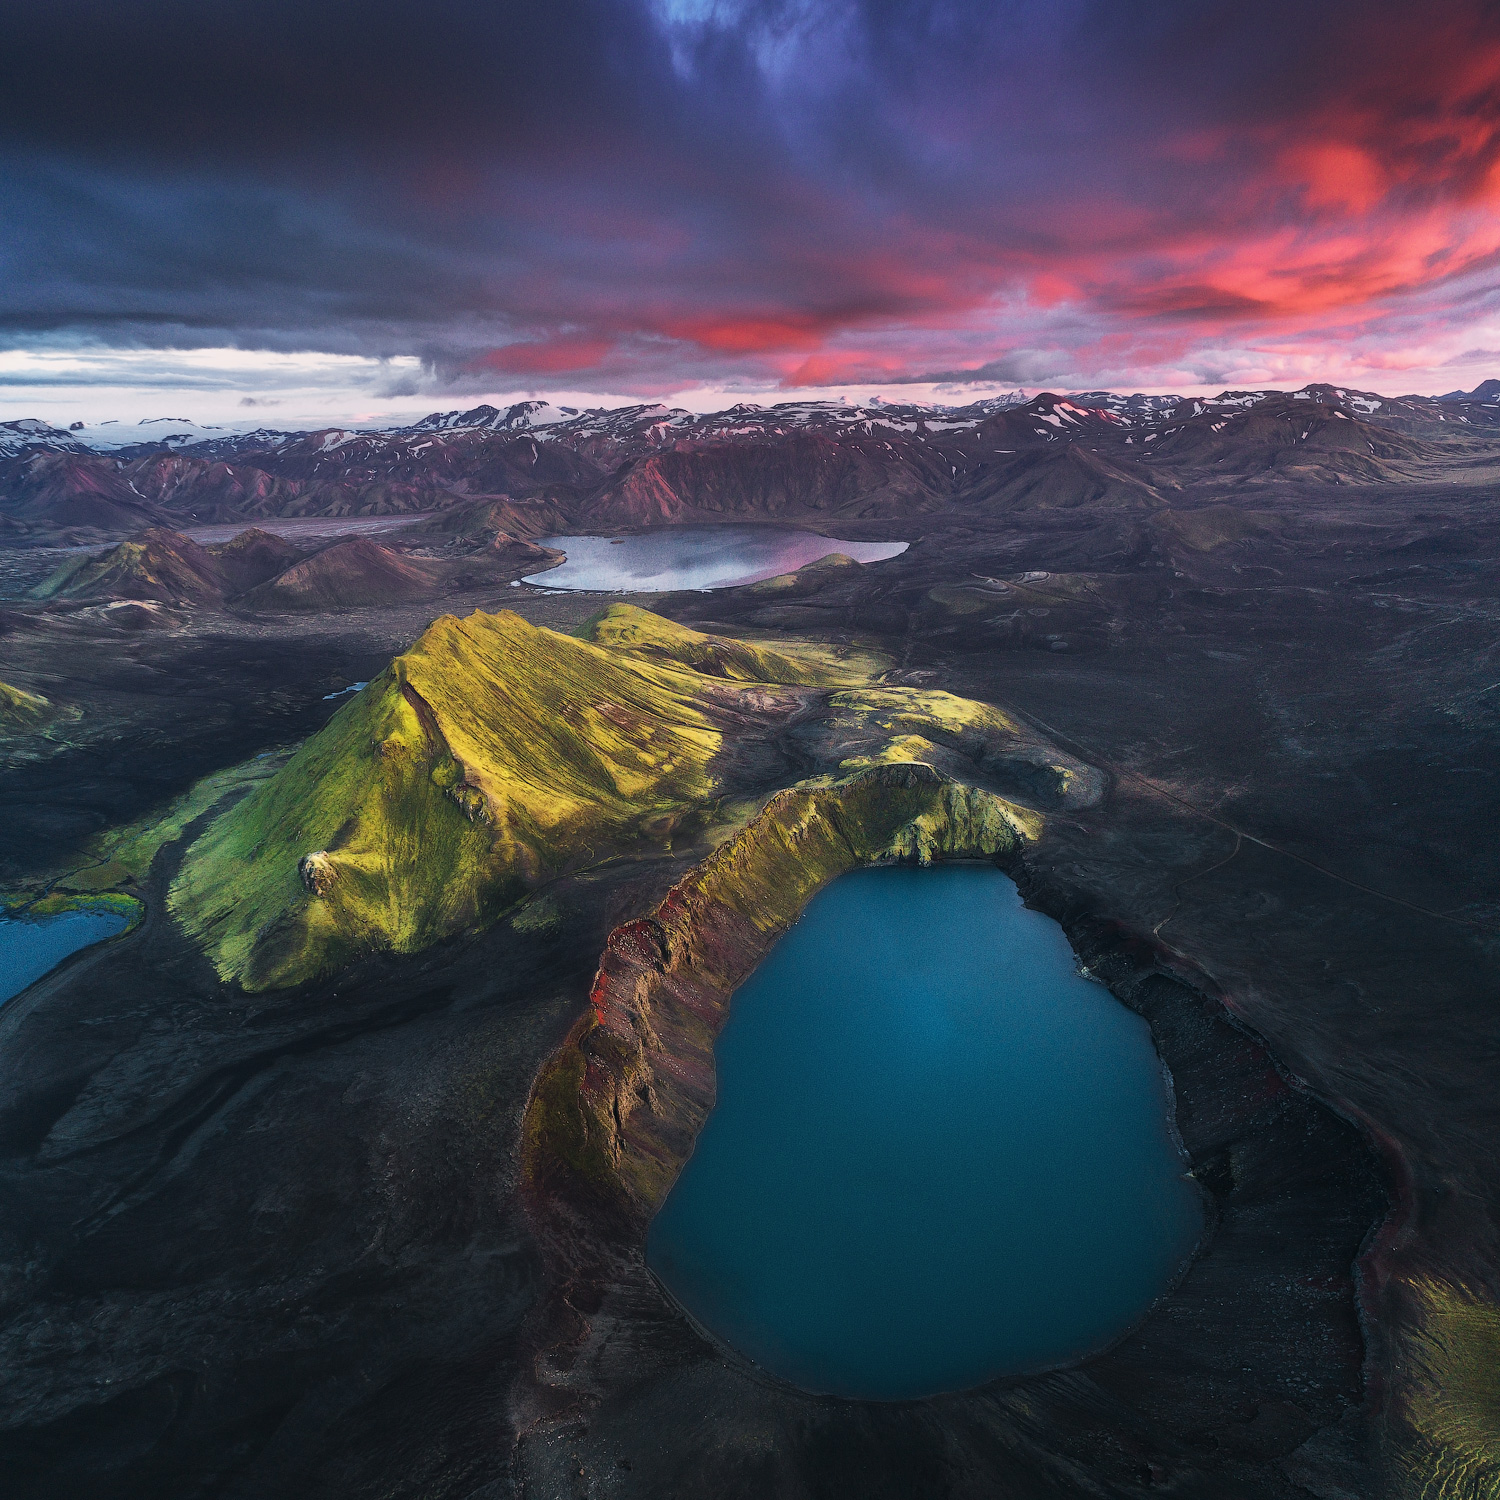 Bláhylur crater is home to a brilliantly blue lake and here you can see its vivd colouration captured at sunset.